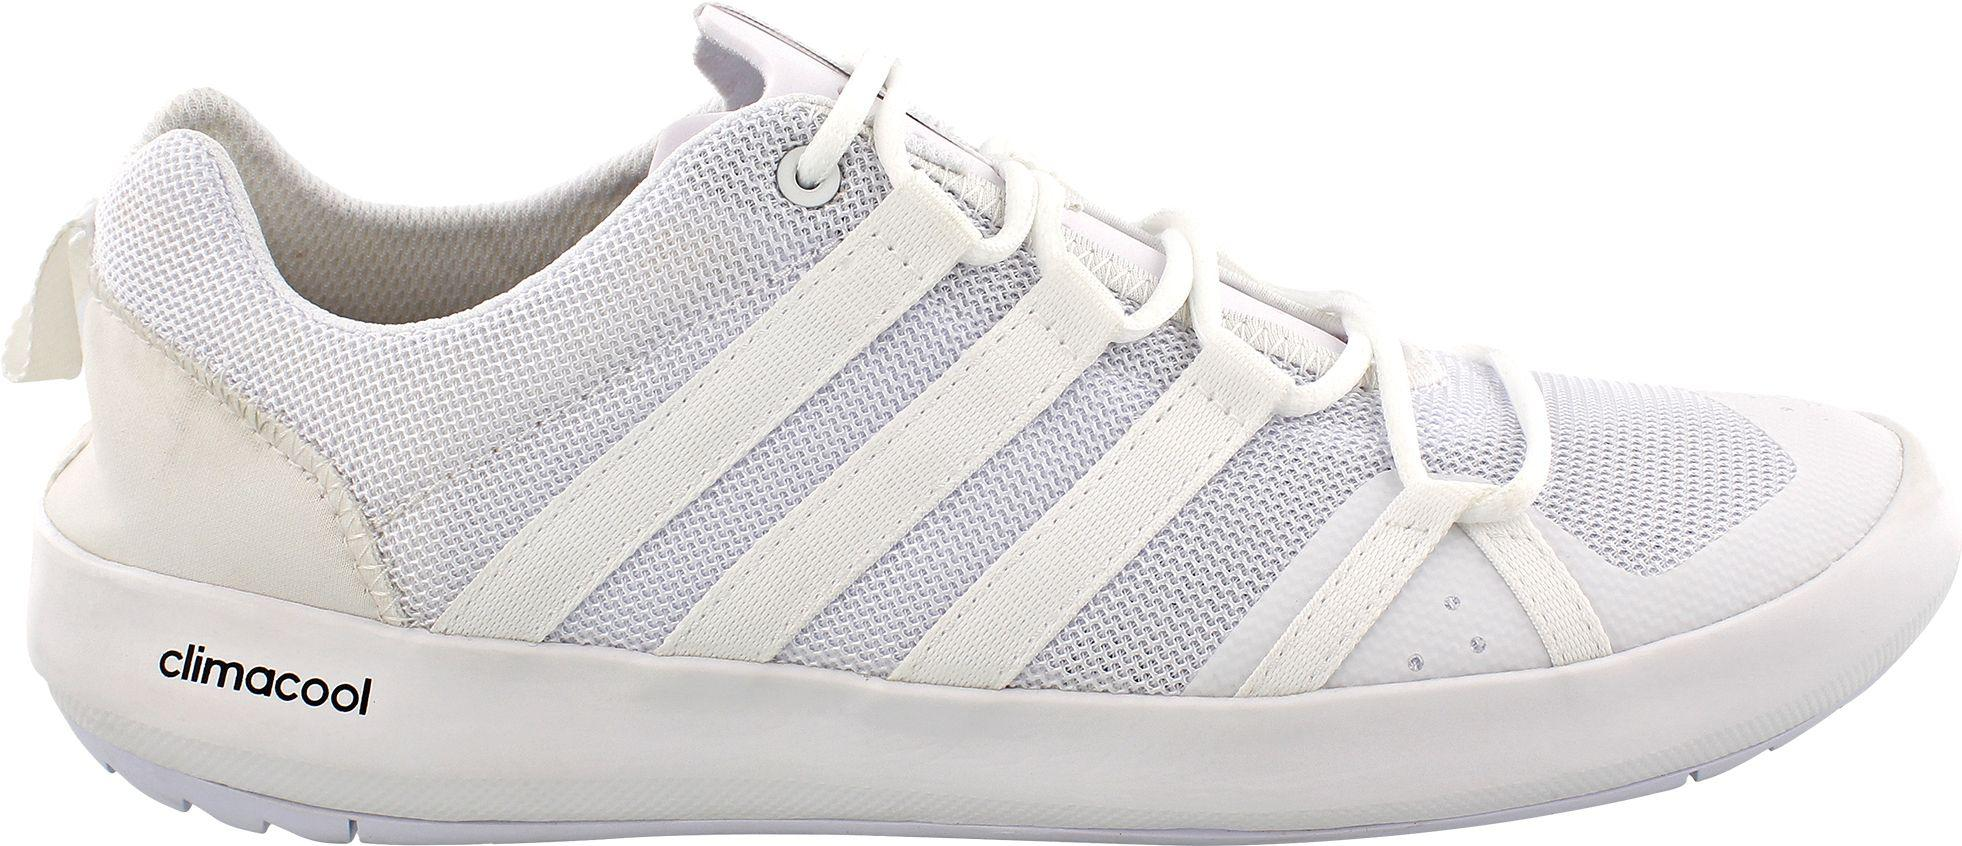 d73bd633e32 Adidas White Outdoor Terrex Climacool Boat Shoes for men